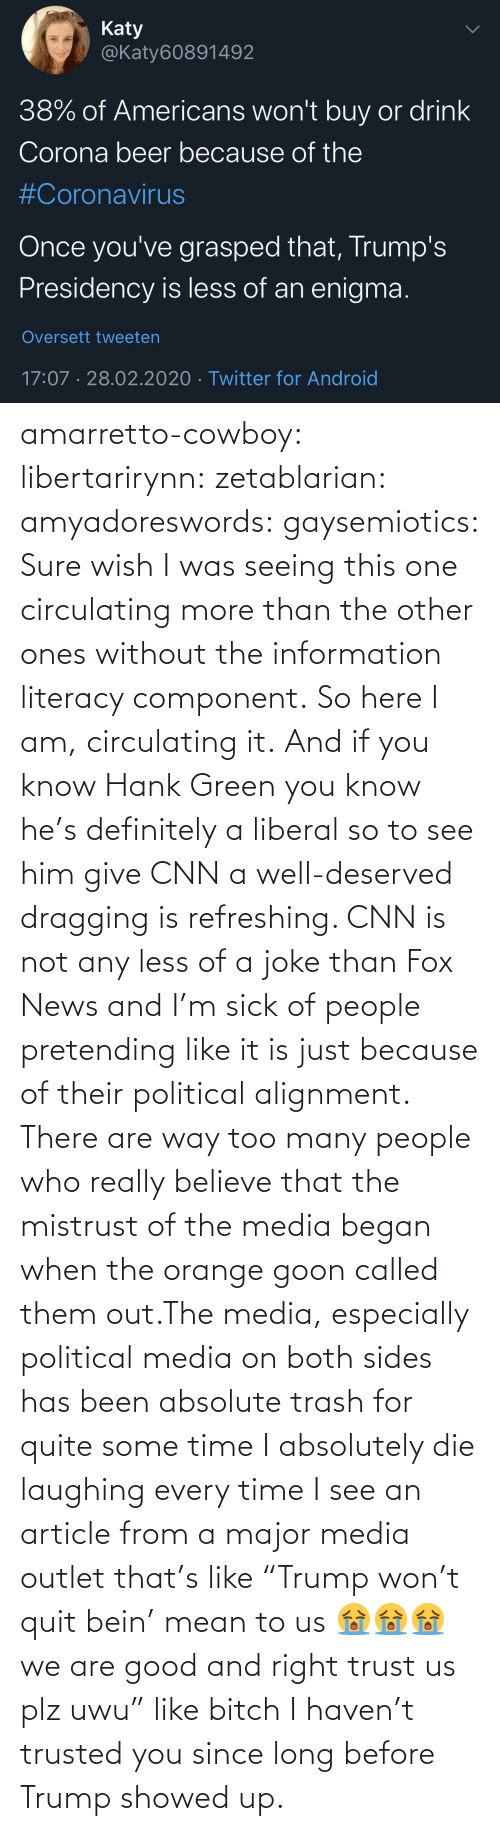 "Both: amarretto-cowboy:  libertarirynn:  zetablarian:  amyadoreswords:   gaysemiotics:       Sure wish I was seeing this one circulating more than the other ones without the information literacy component. So here I am, circulating it.    And if you know Hank Green you know he's definitely a liberal so to see him give CNN a well-deserved dragging is refreshing. CNN is not any less of a joke than Fox News and I'm sick of people pretending like it is just because of their political alignment.   There are way too many people who really believe that the mistrust of the media began when the orange goon called them out.The media, especially political media on both sides has been absolute trash for quite some time   I absolutely die laughing every time I see an article from a major media outlet that's like ""Trump won't quit bein' mean to us 😭😭😭 we are good and right trust us plz uwu"" like bitch I haven't trusted you since long before Trump showed up."